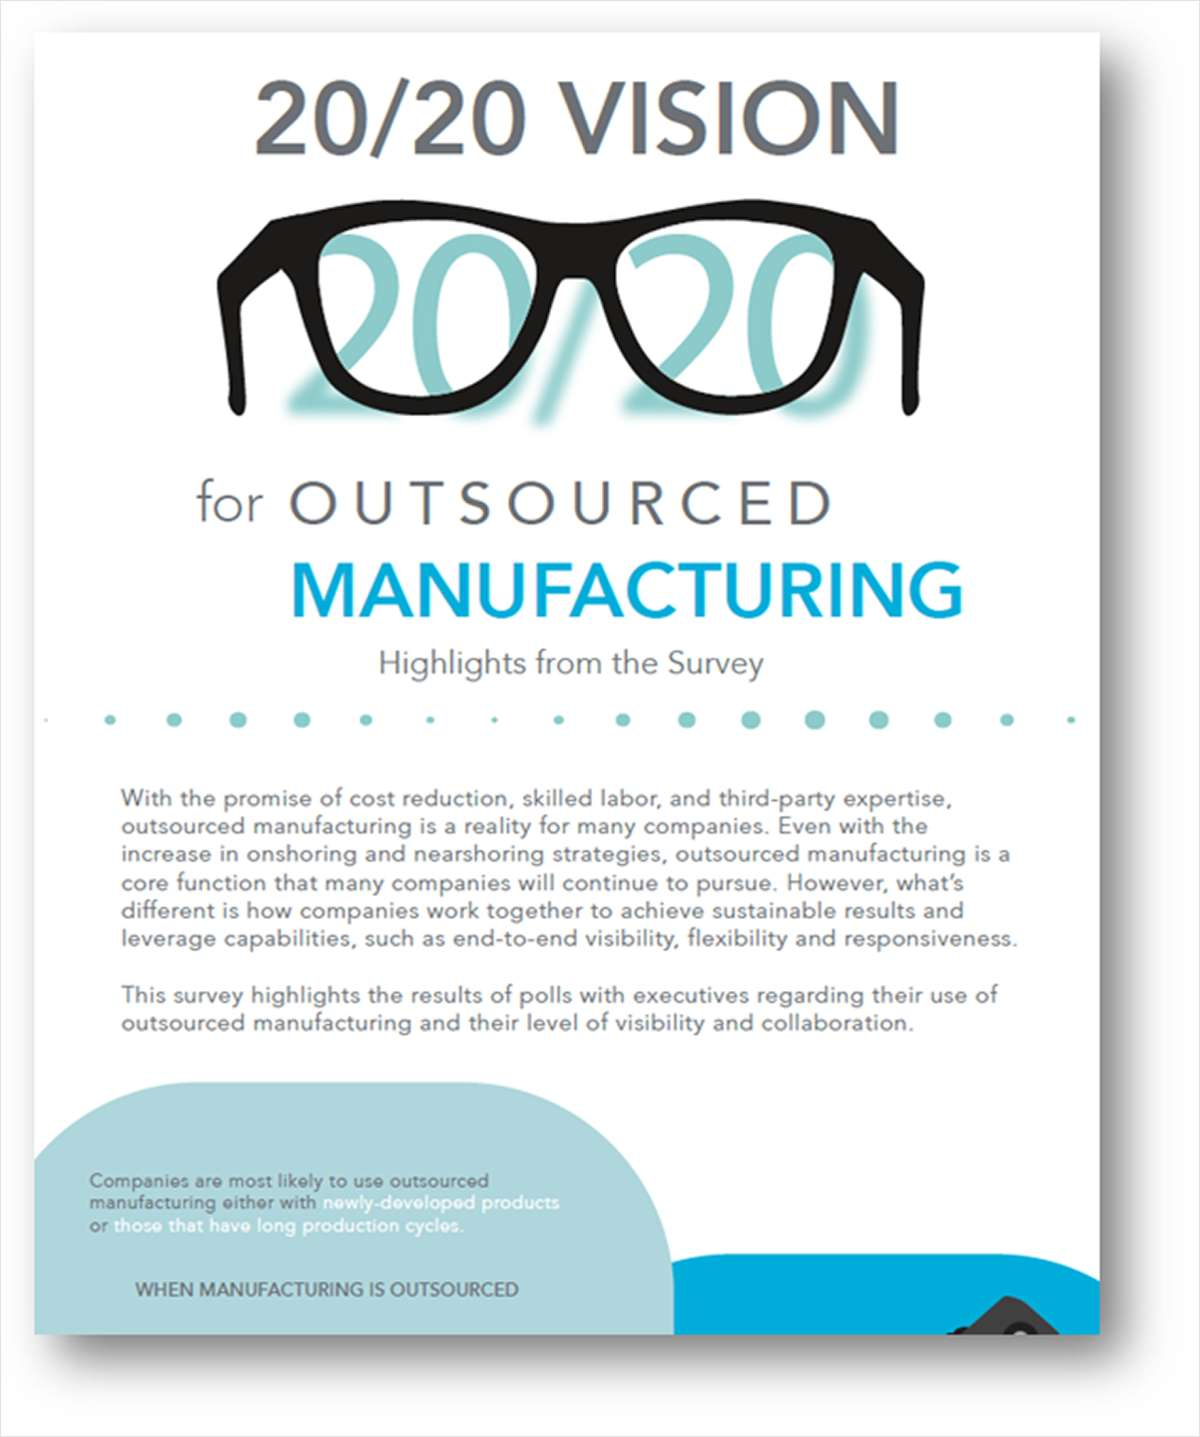 20/20 Vision for Outsourced Manufacturing